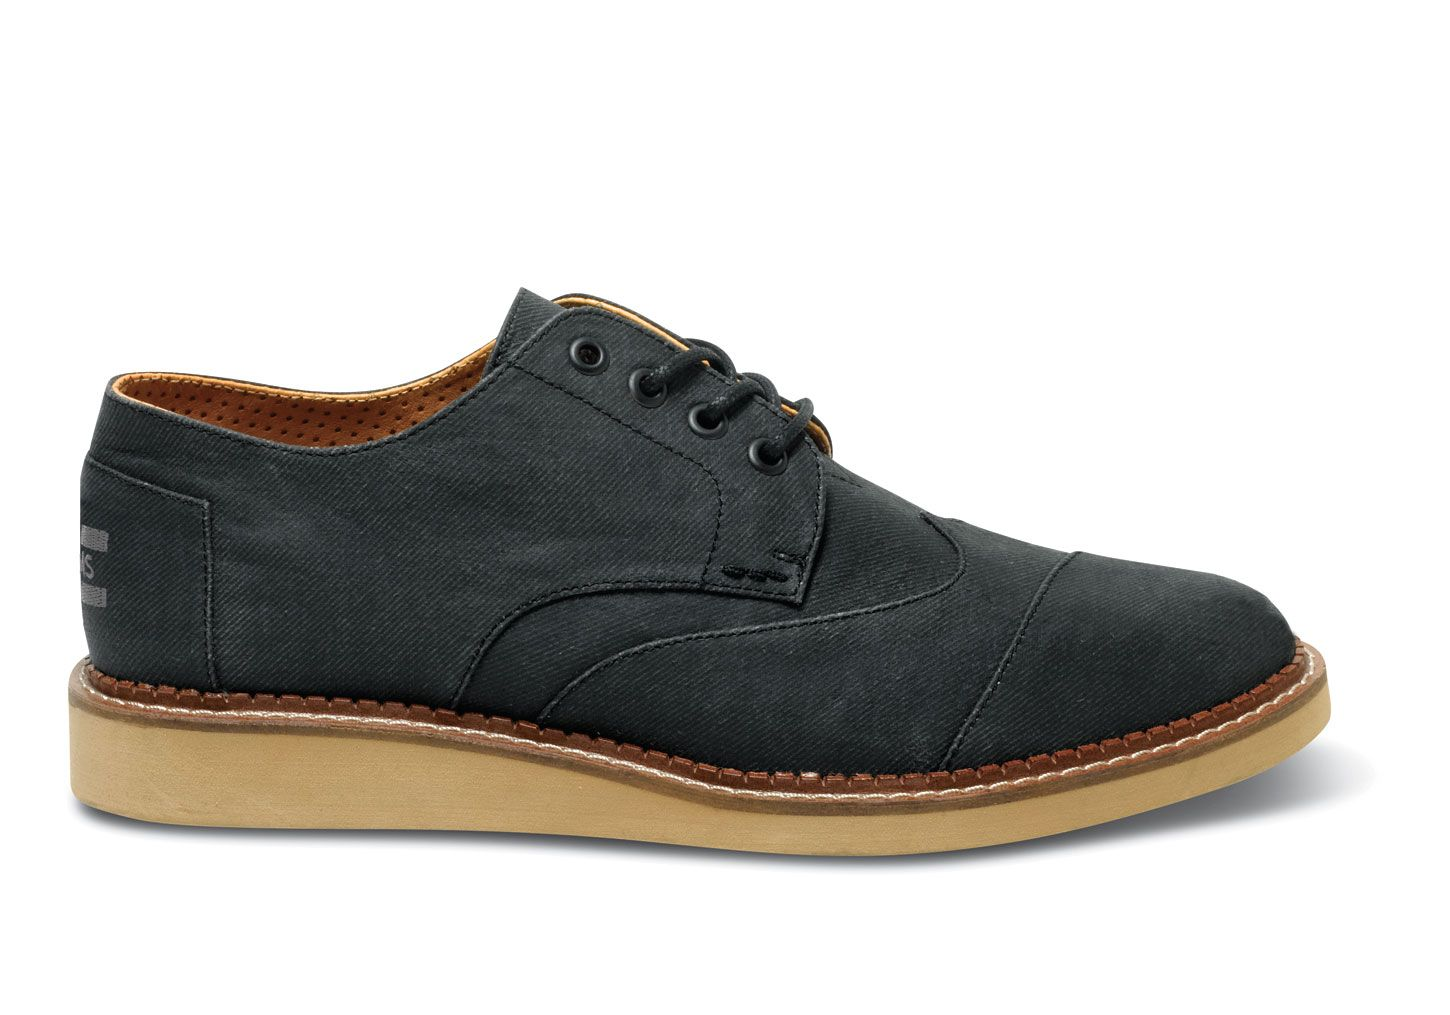 156434b0a52fa We took great care in recreating a classic shoe with our own West Coast  influences.